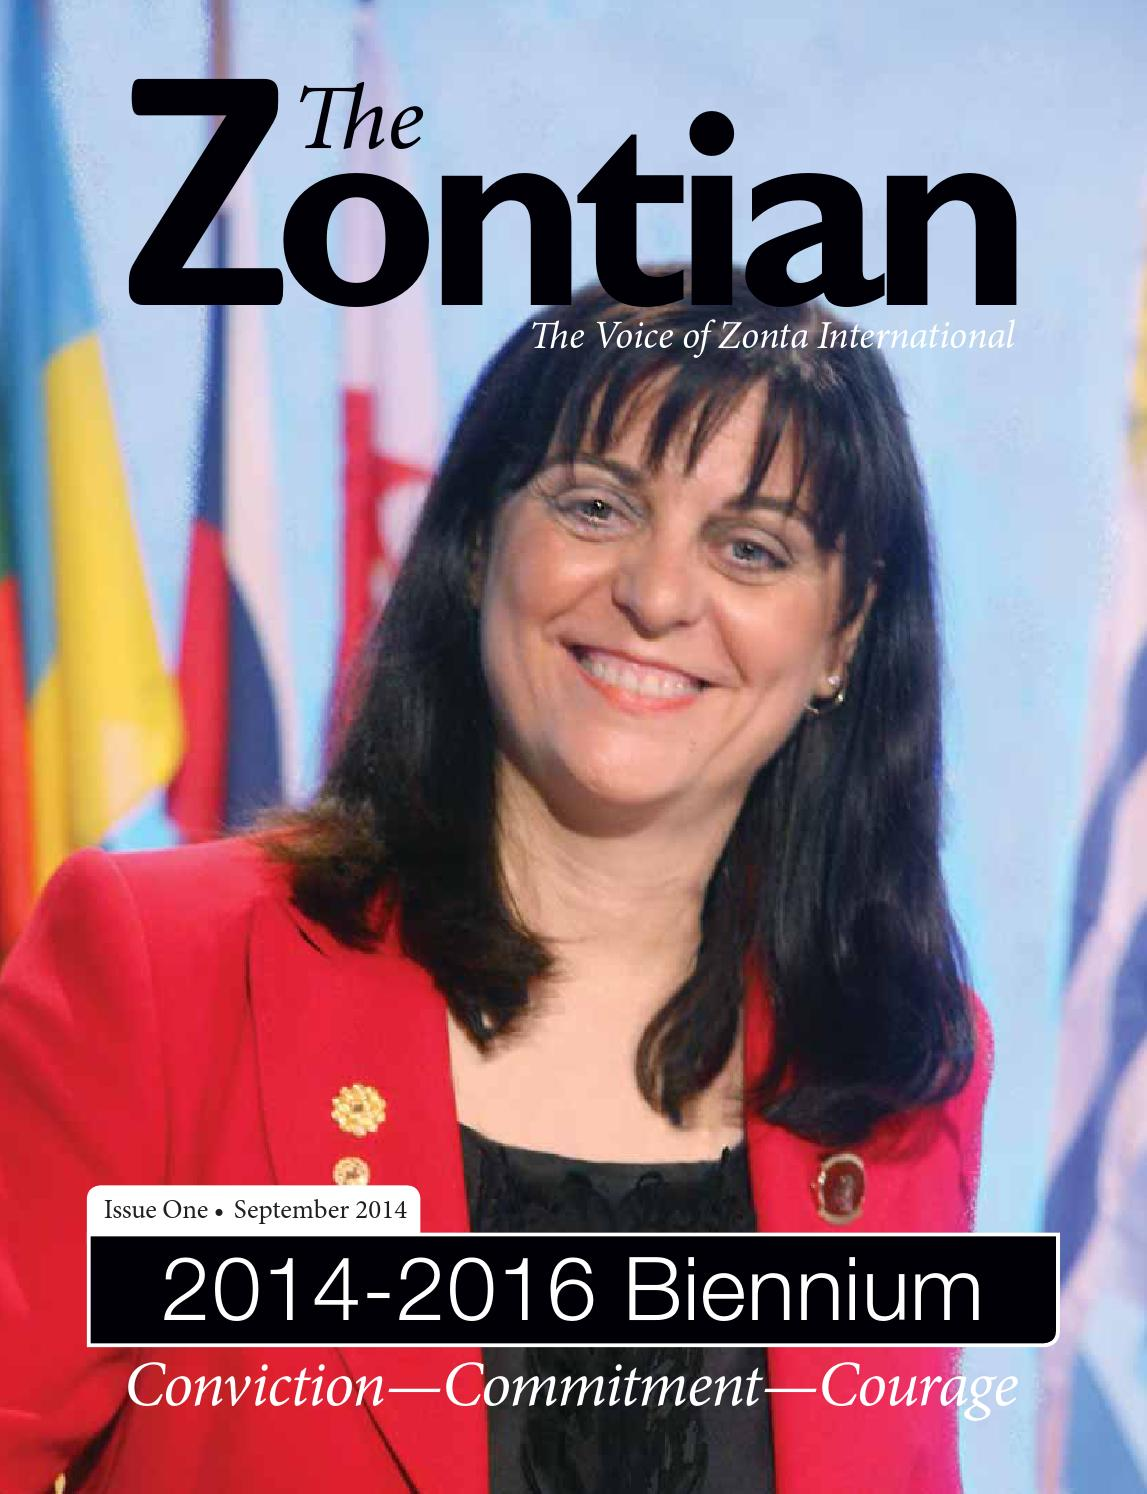 851ac49f8db The Zontian September 2014 by Zonta International - issuu